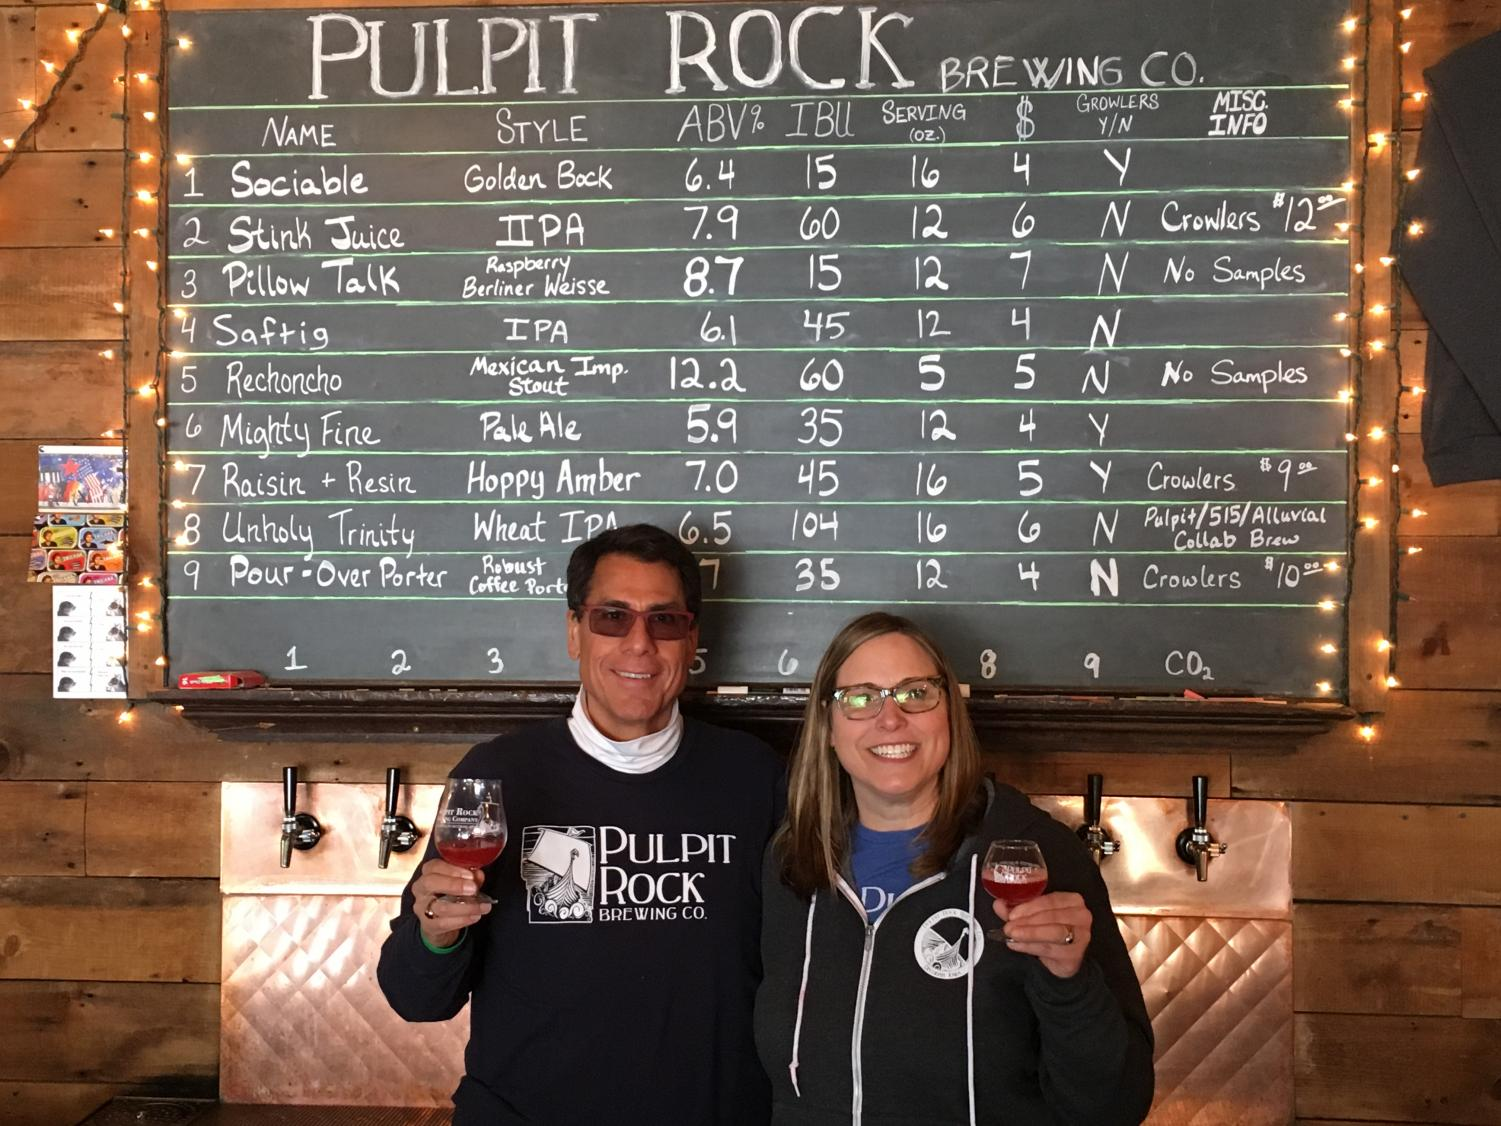 Pete Espinosa ('81) founded Pulpit Rock Brewing Company with Jodi Tollefson Bjerke ('94).